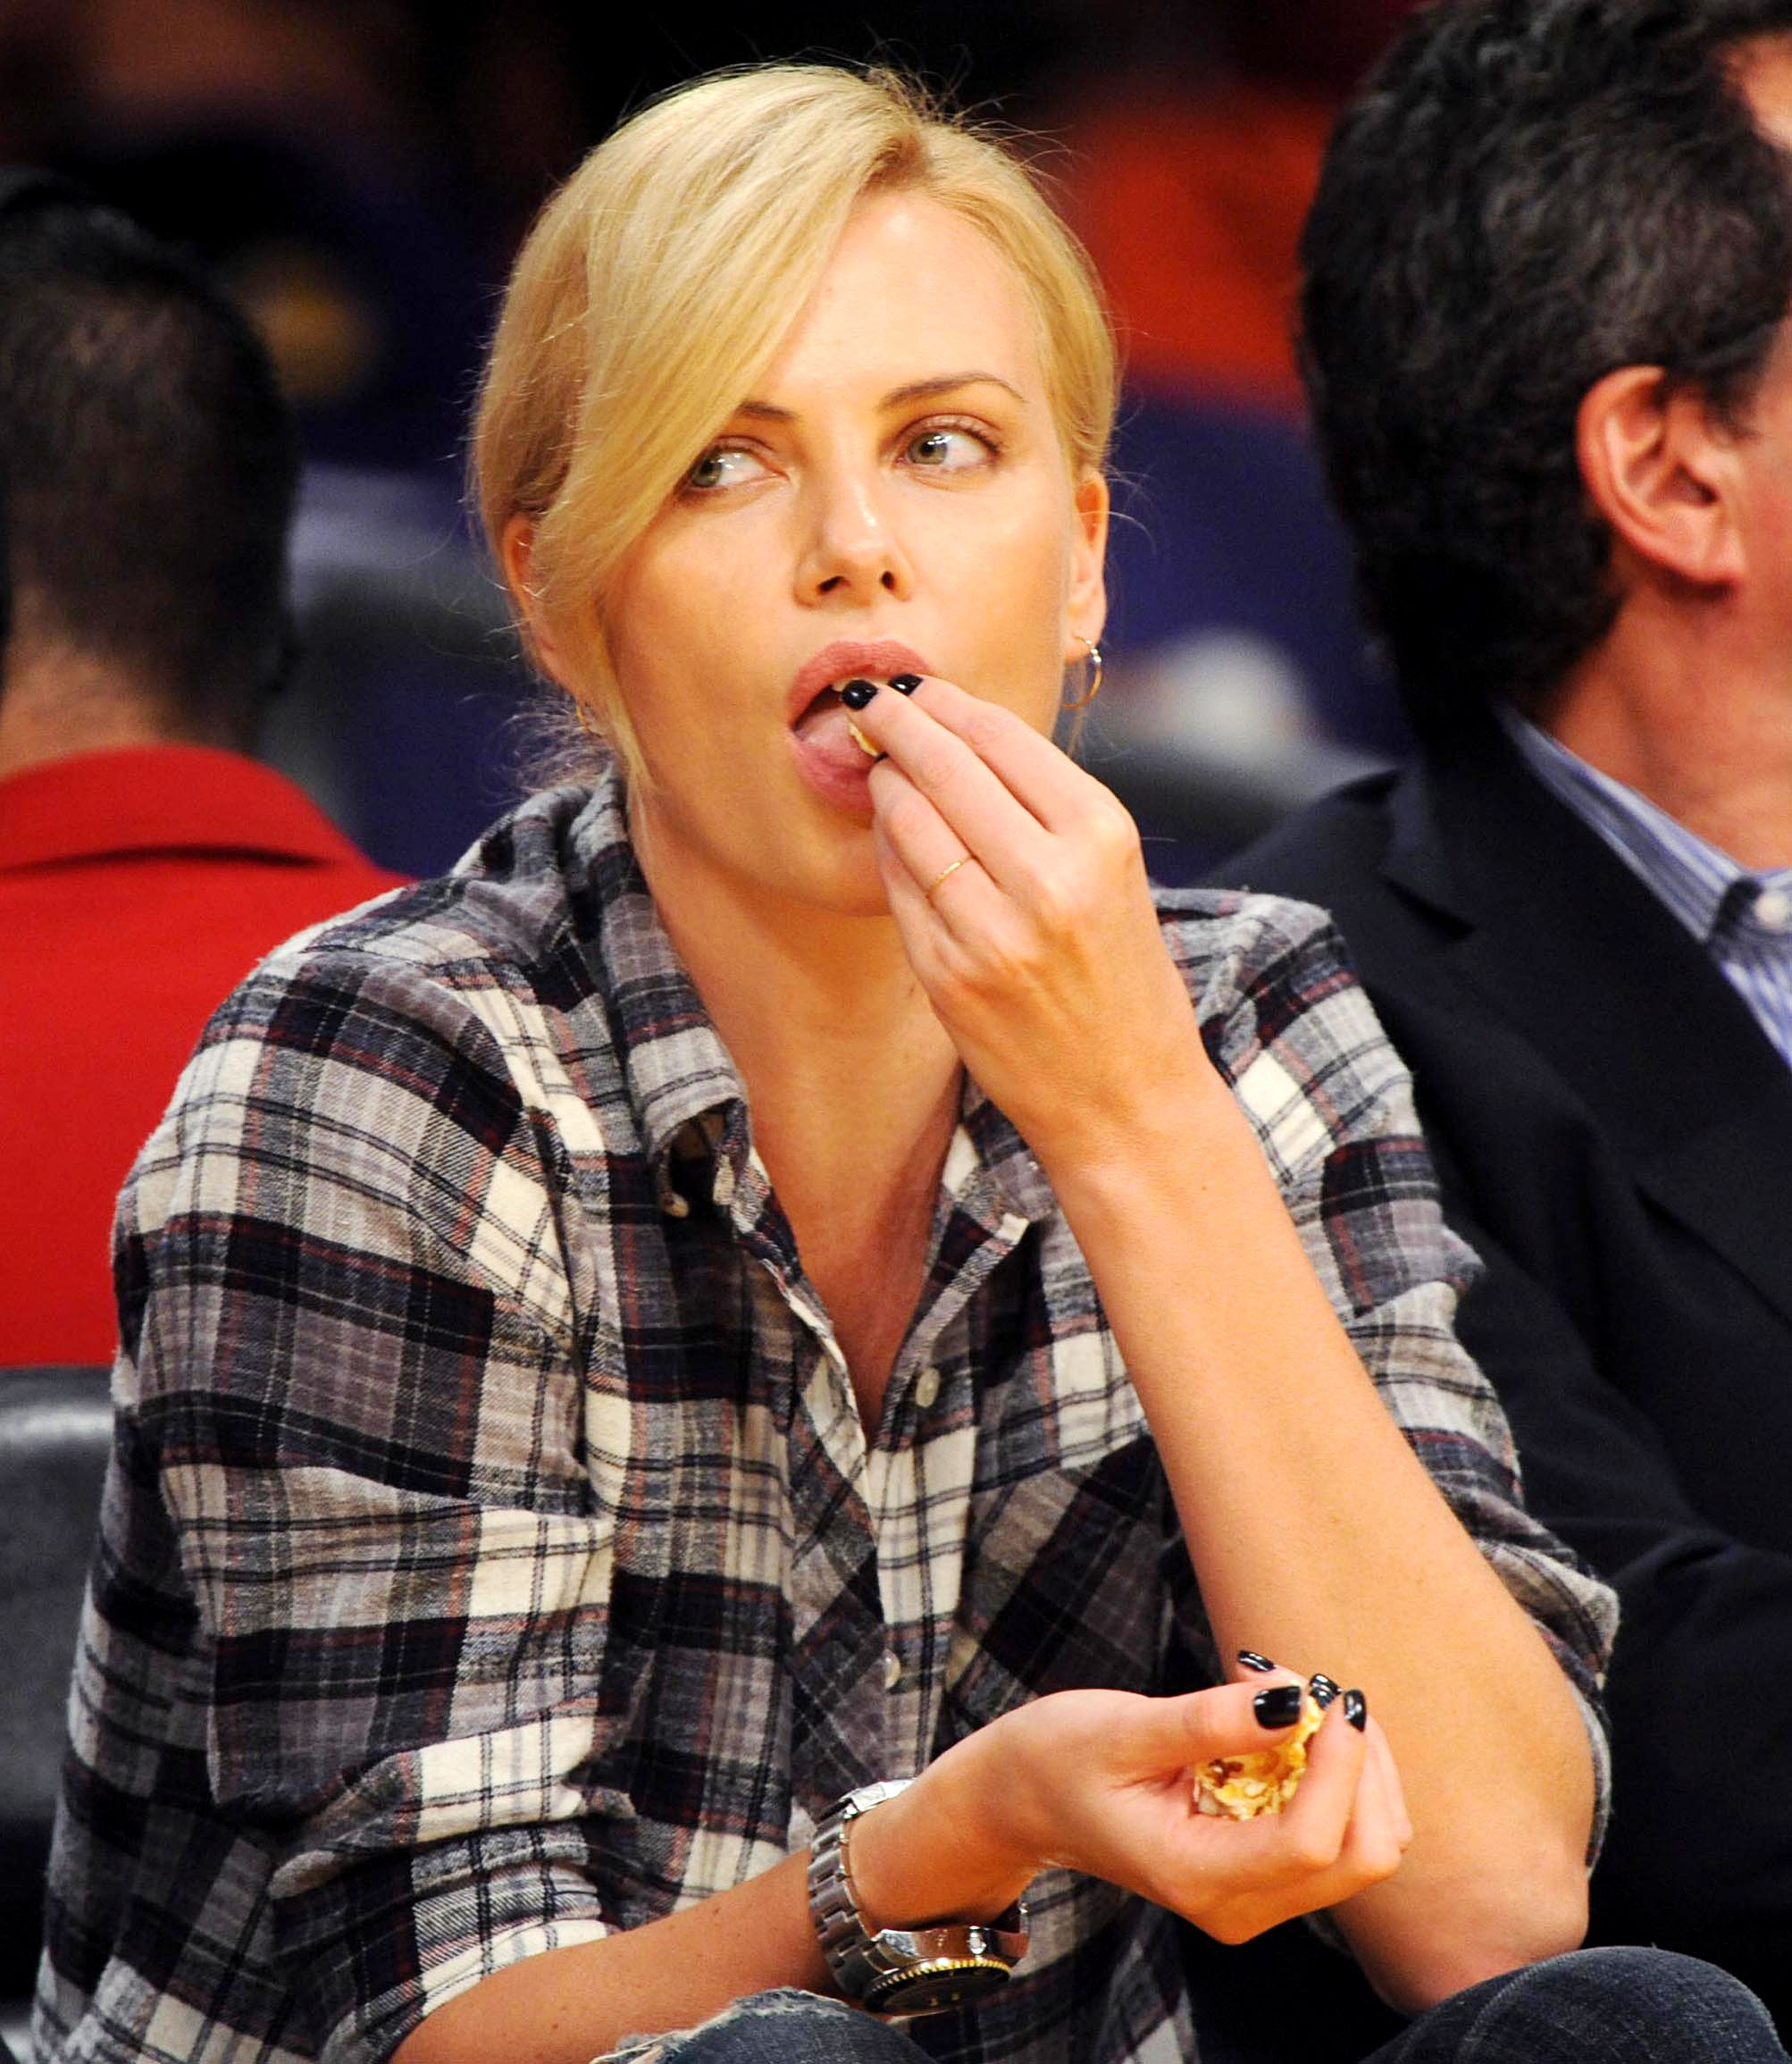 Celebs Eating Courtside - The Tully star was the epitome of courtside casual as she munched on popcorn while watching the Los Angeles Lakers play the Oklahoma City Thunder in game two of the Western Conference playoffs at the Staples Center in Los Angeles on April 20, 2010.